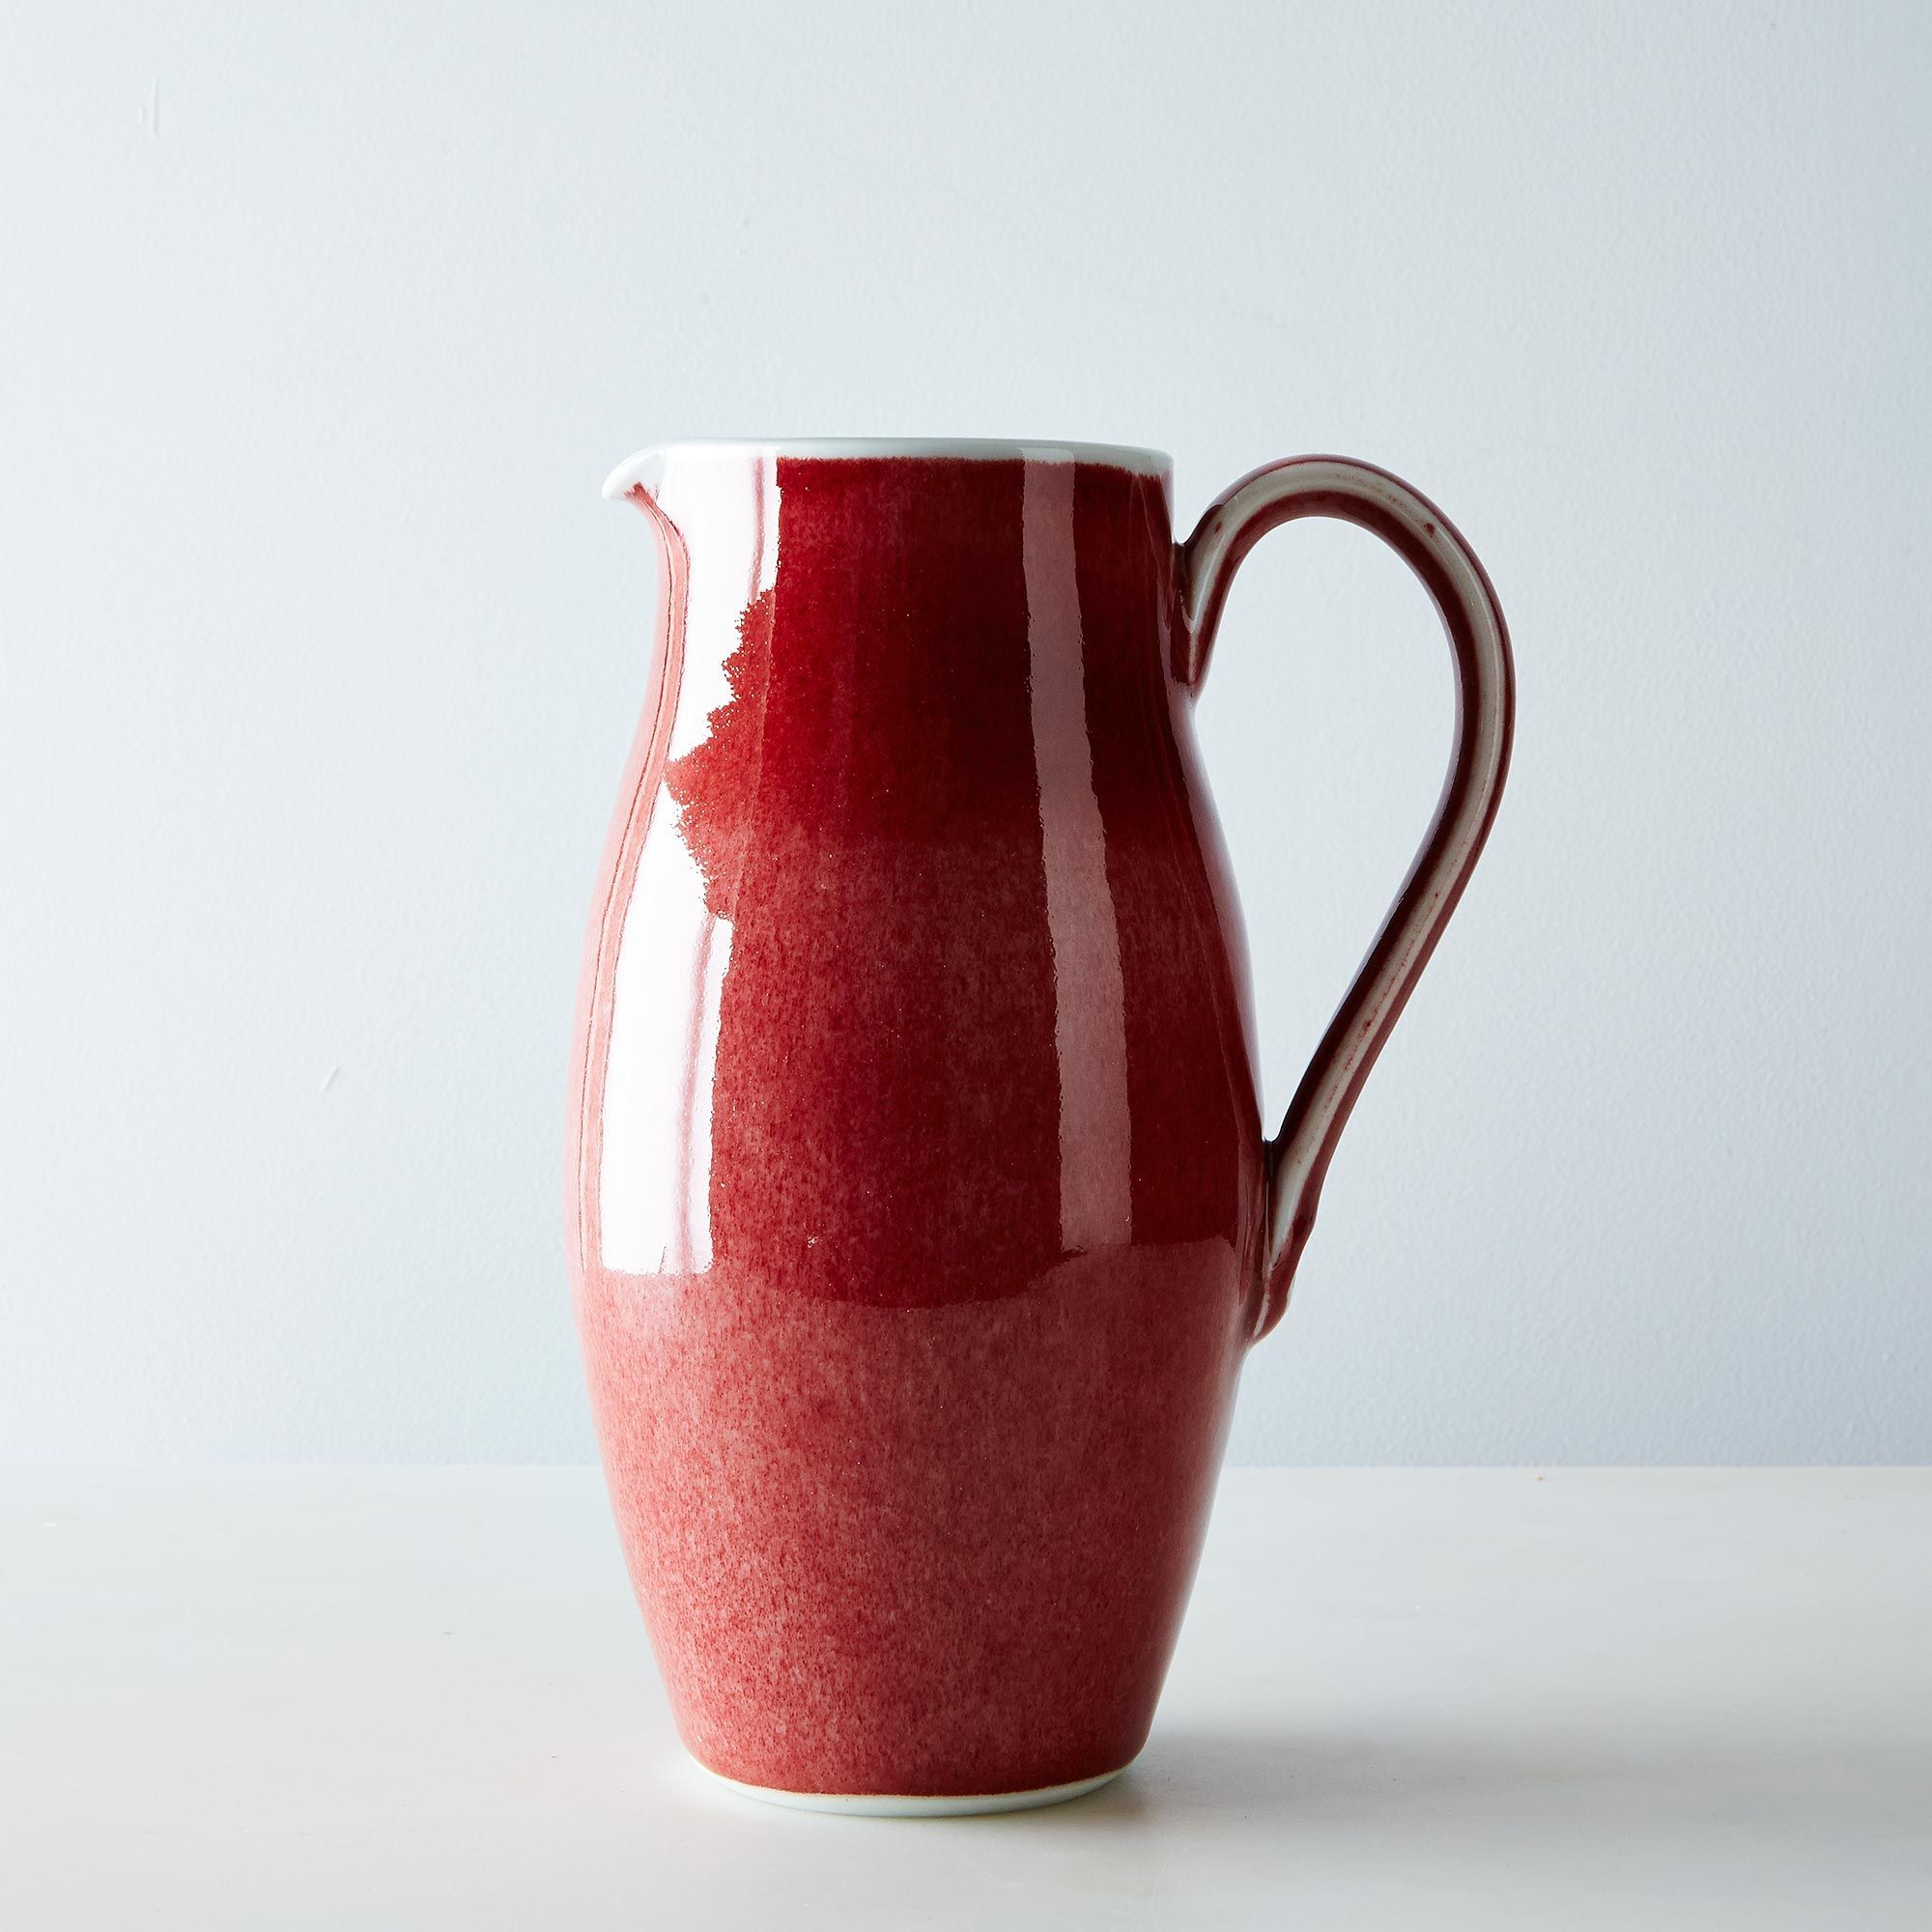 04392f8a 46d6 4723 add7 d0fb1f20351d  2014 1020 three rays pottery red pitcher 002